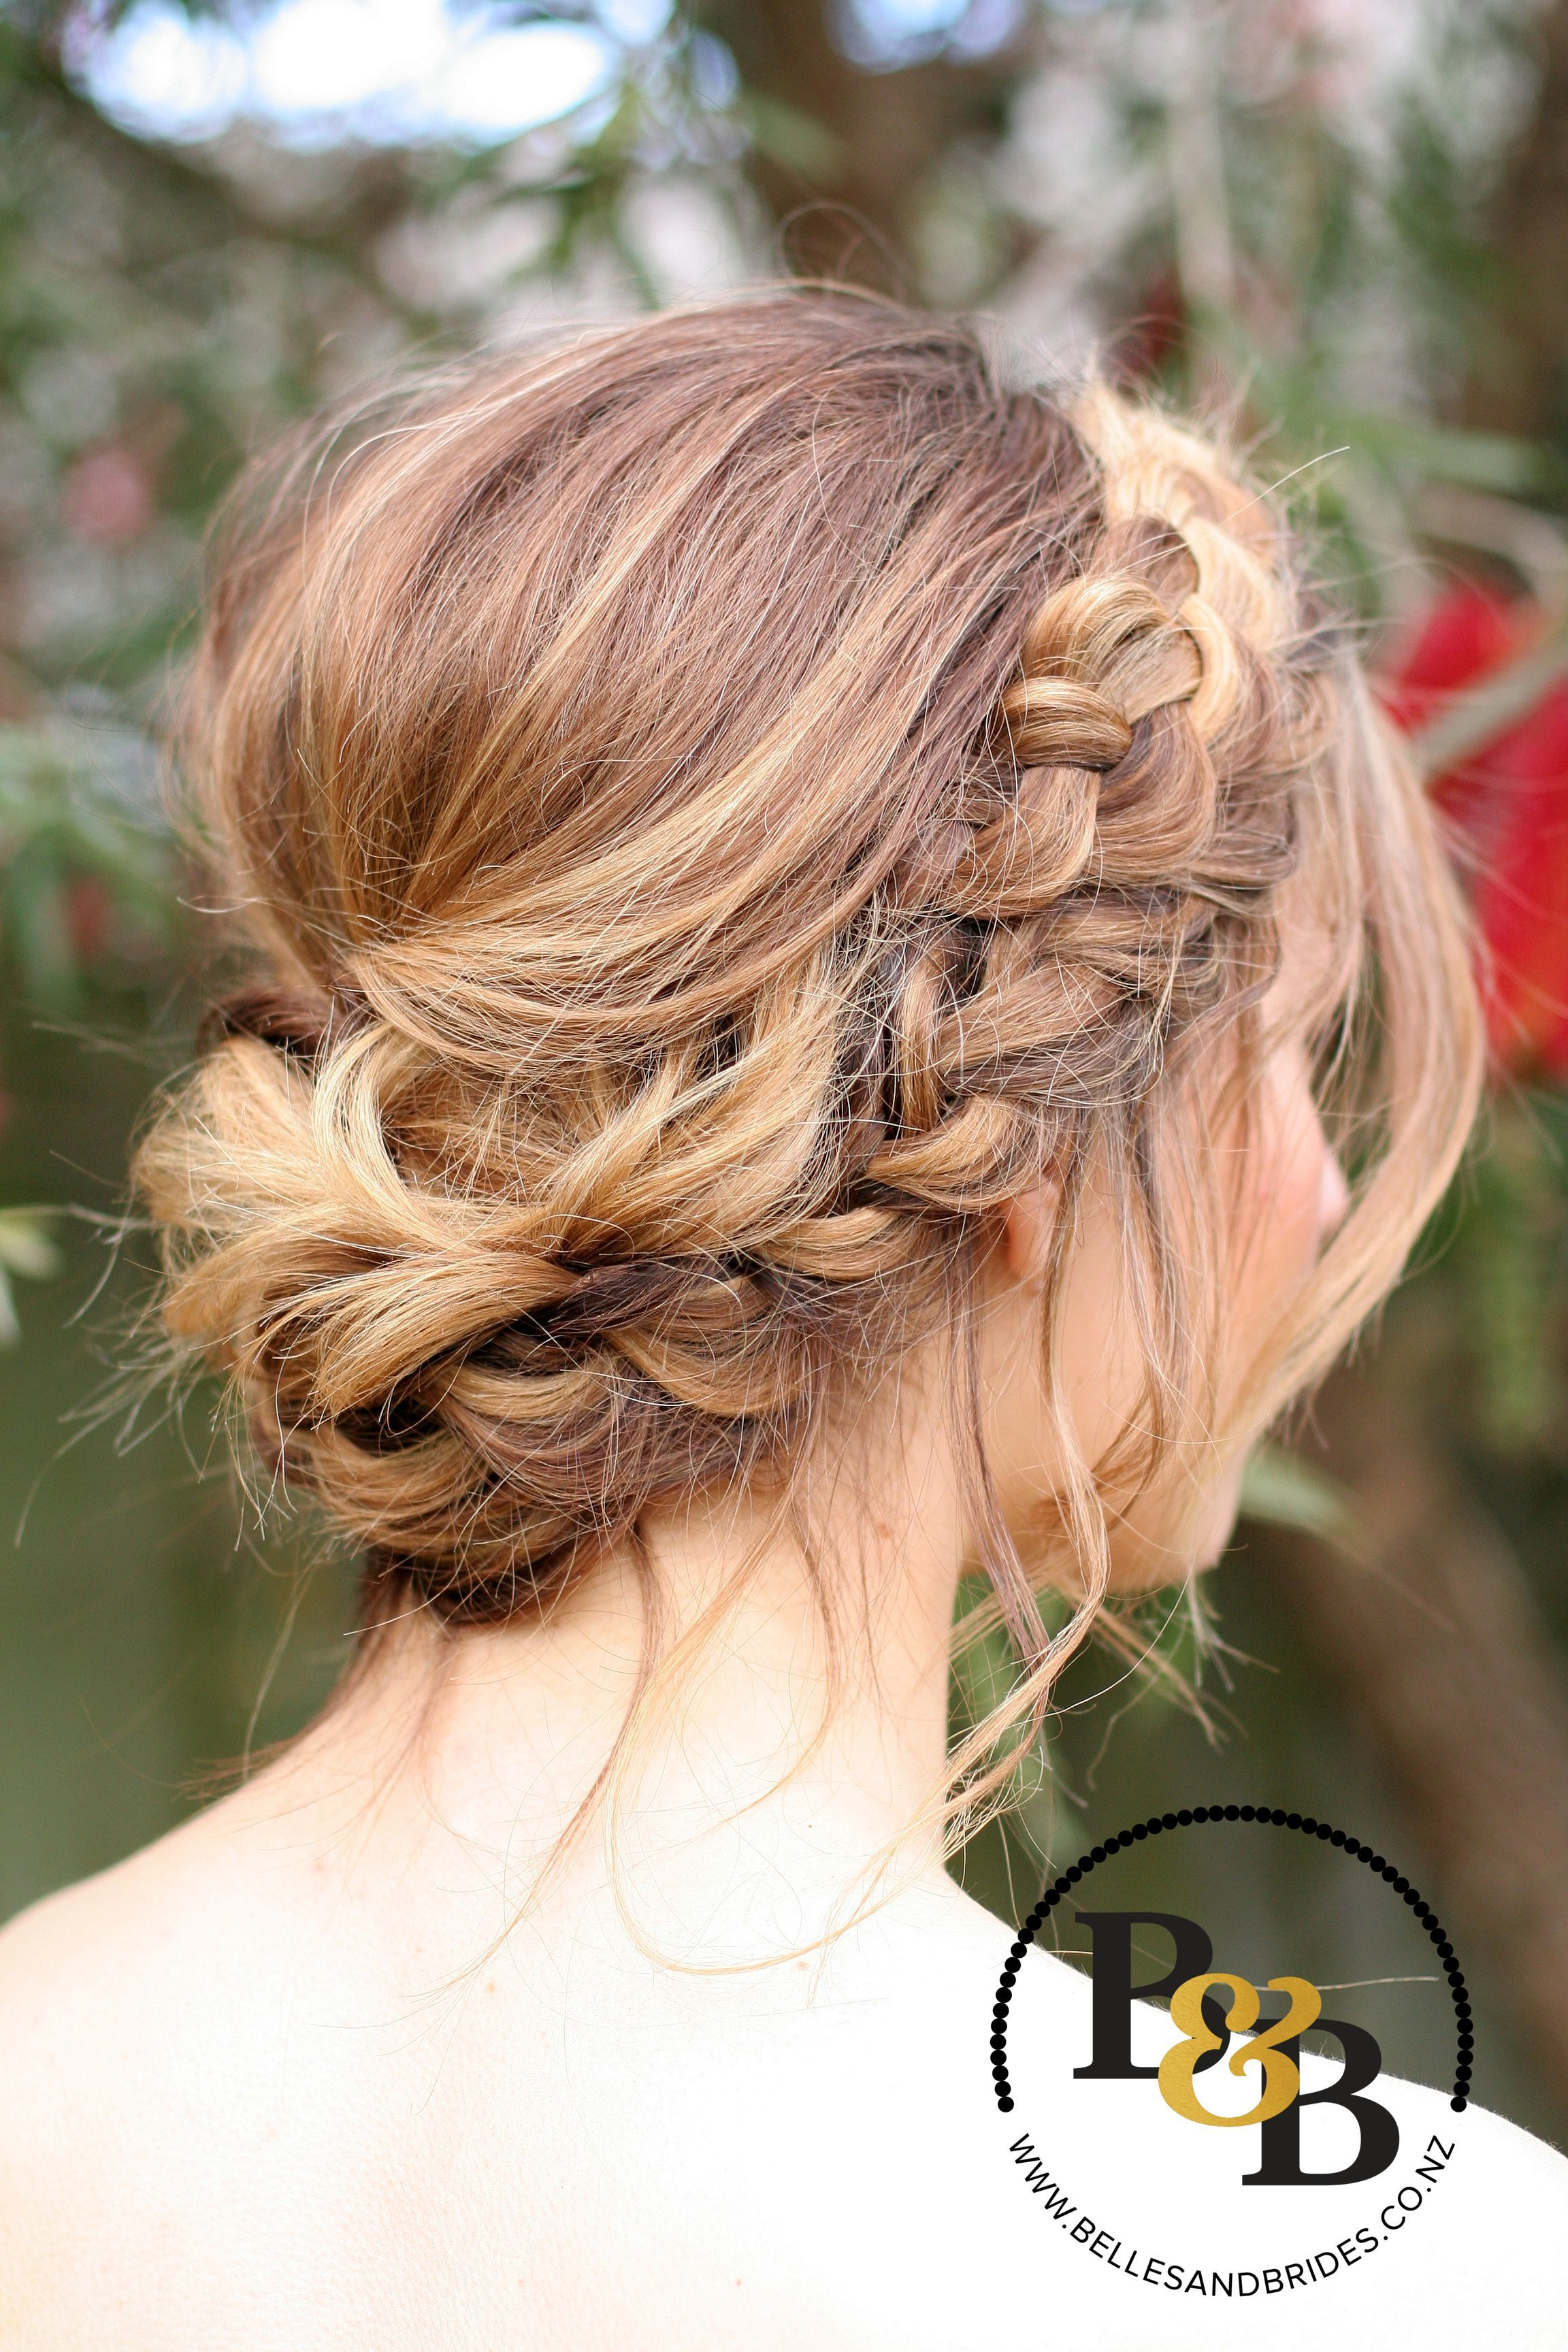 Frisuren Hochzeitsgast Wedding Hairstyles For Long Hair Plaits Fade Haircut